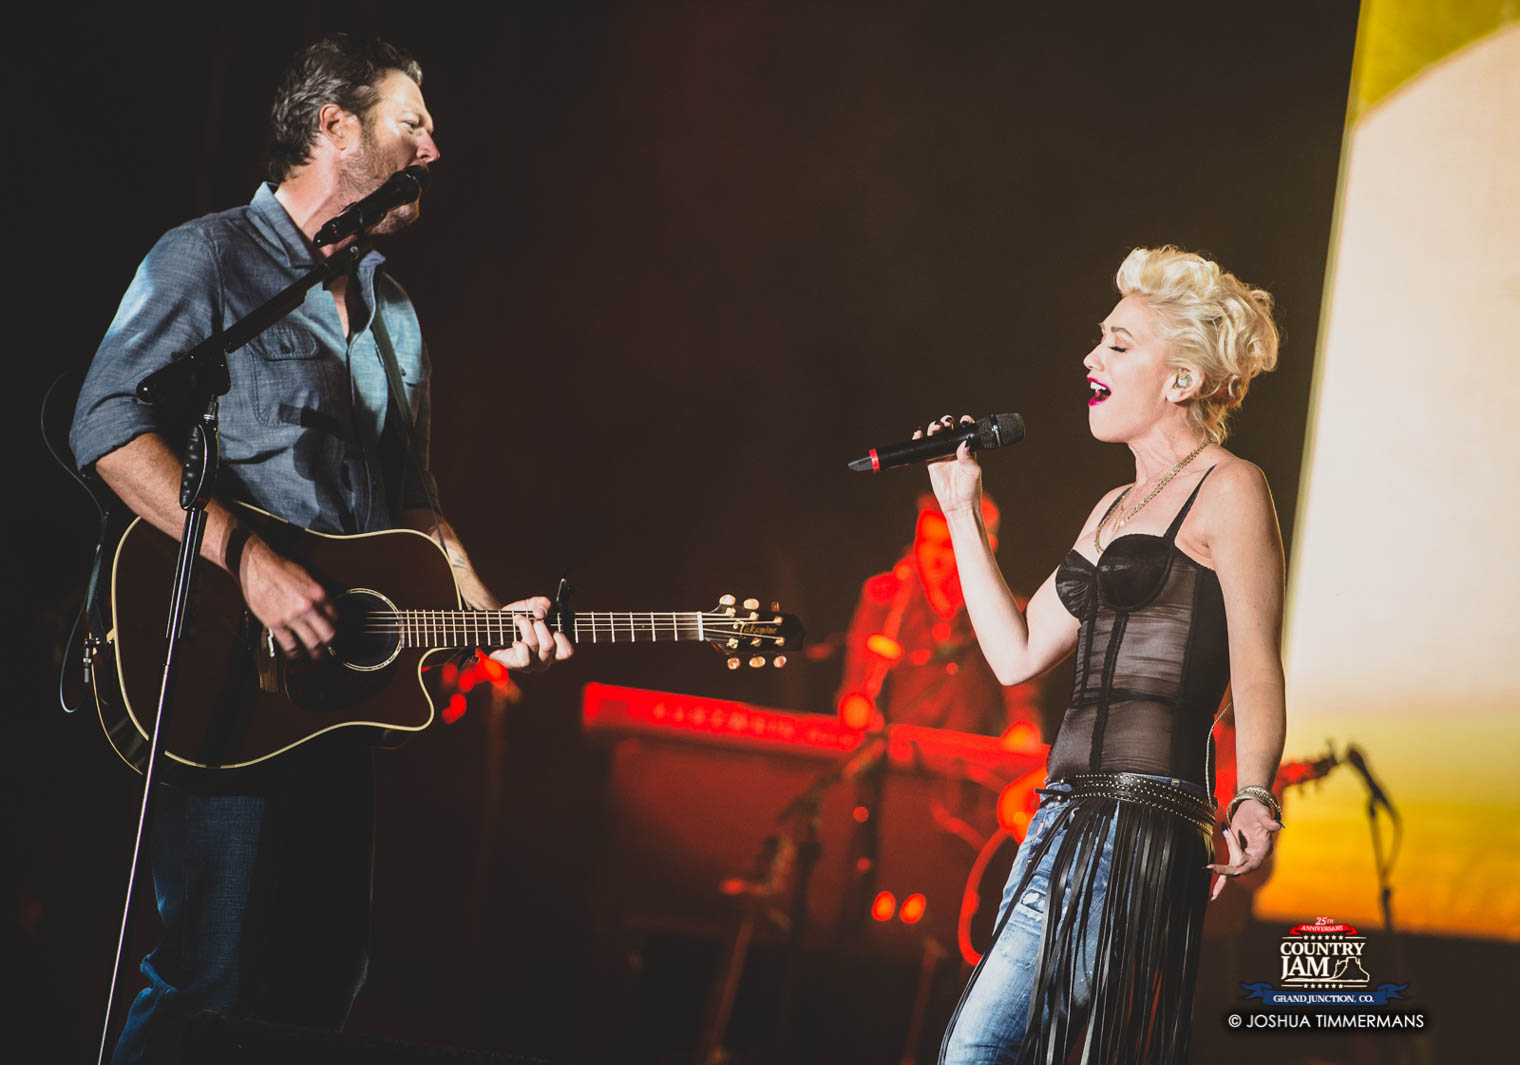 20160619_CountryJam_BlakeShelton_Performance_Timmermans_1169